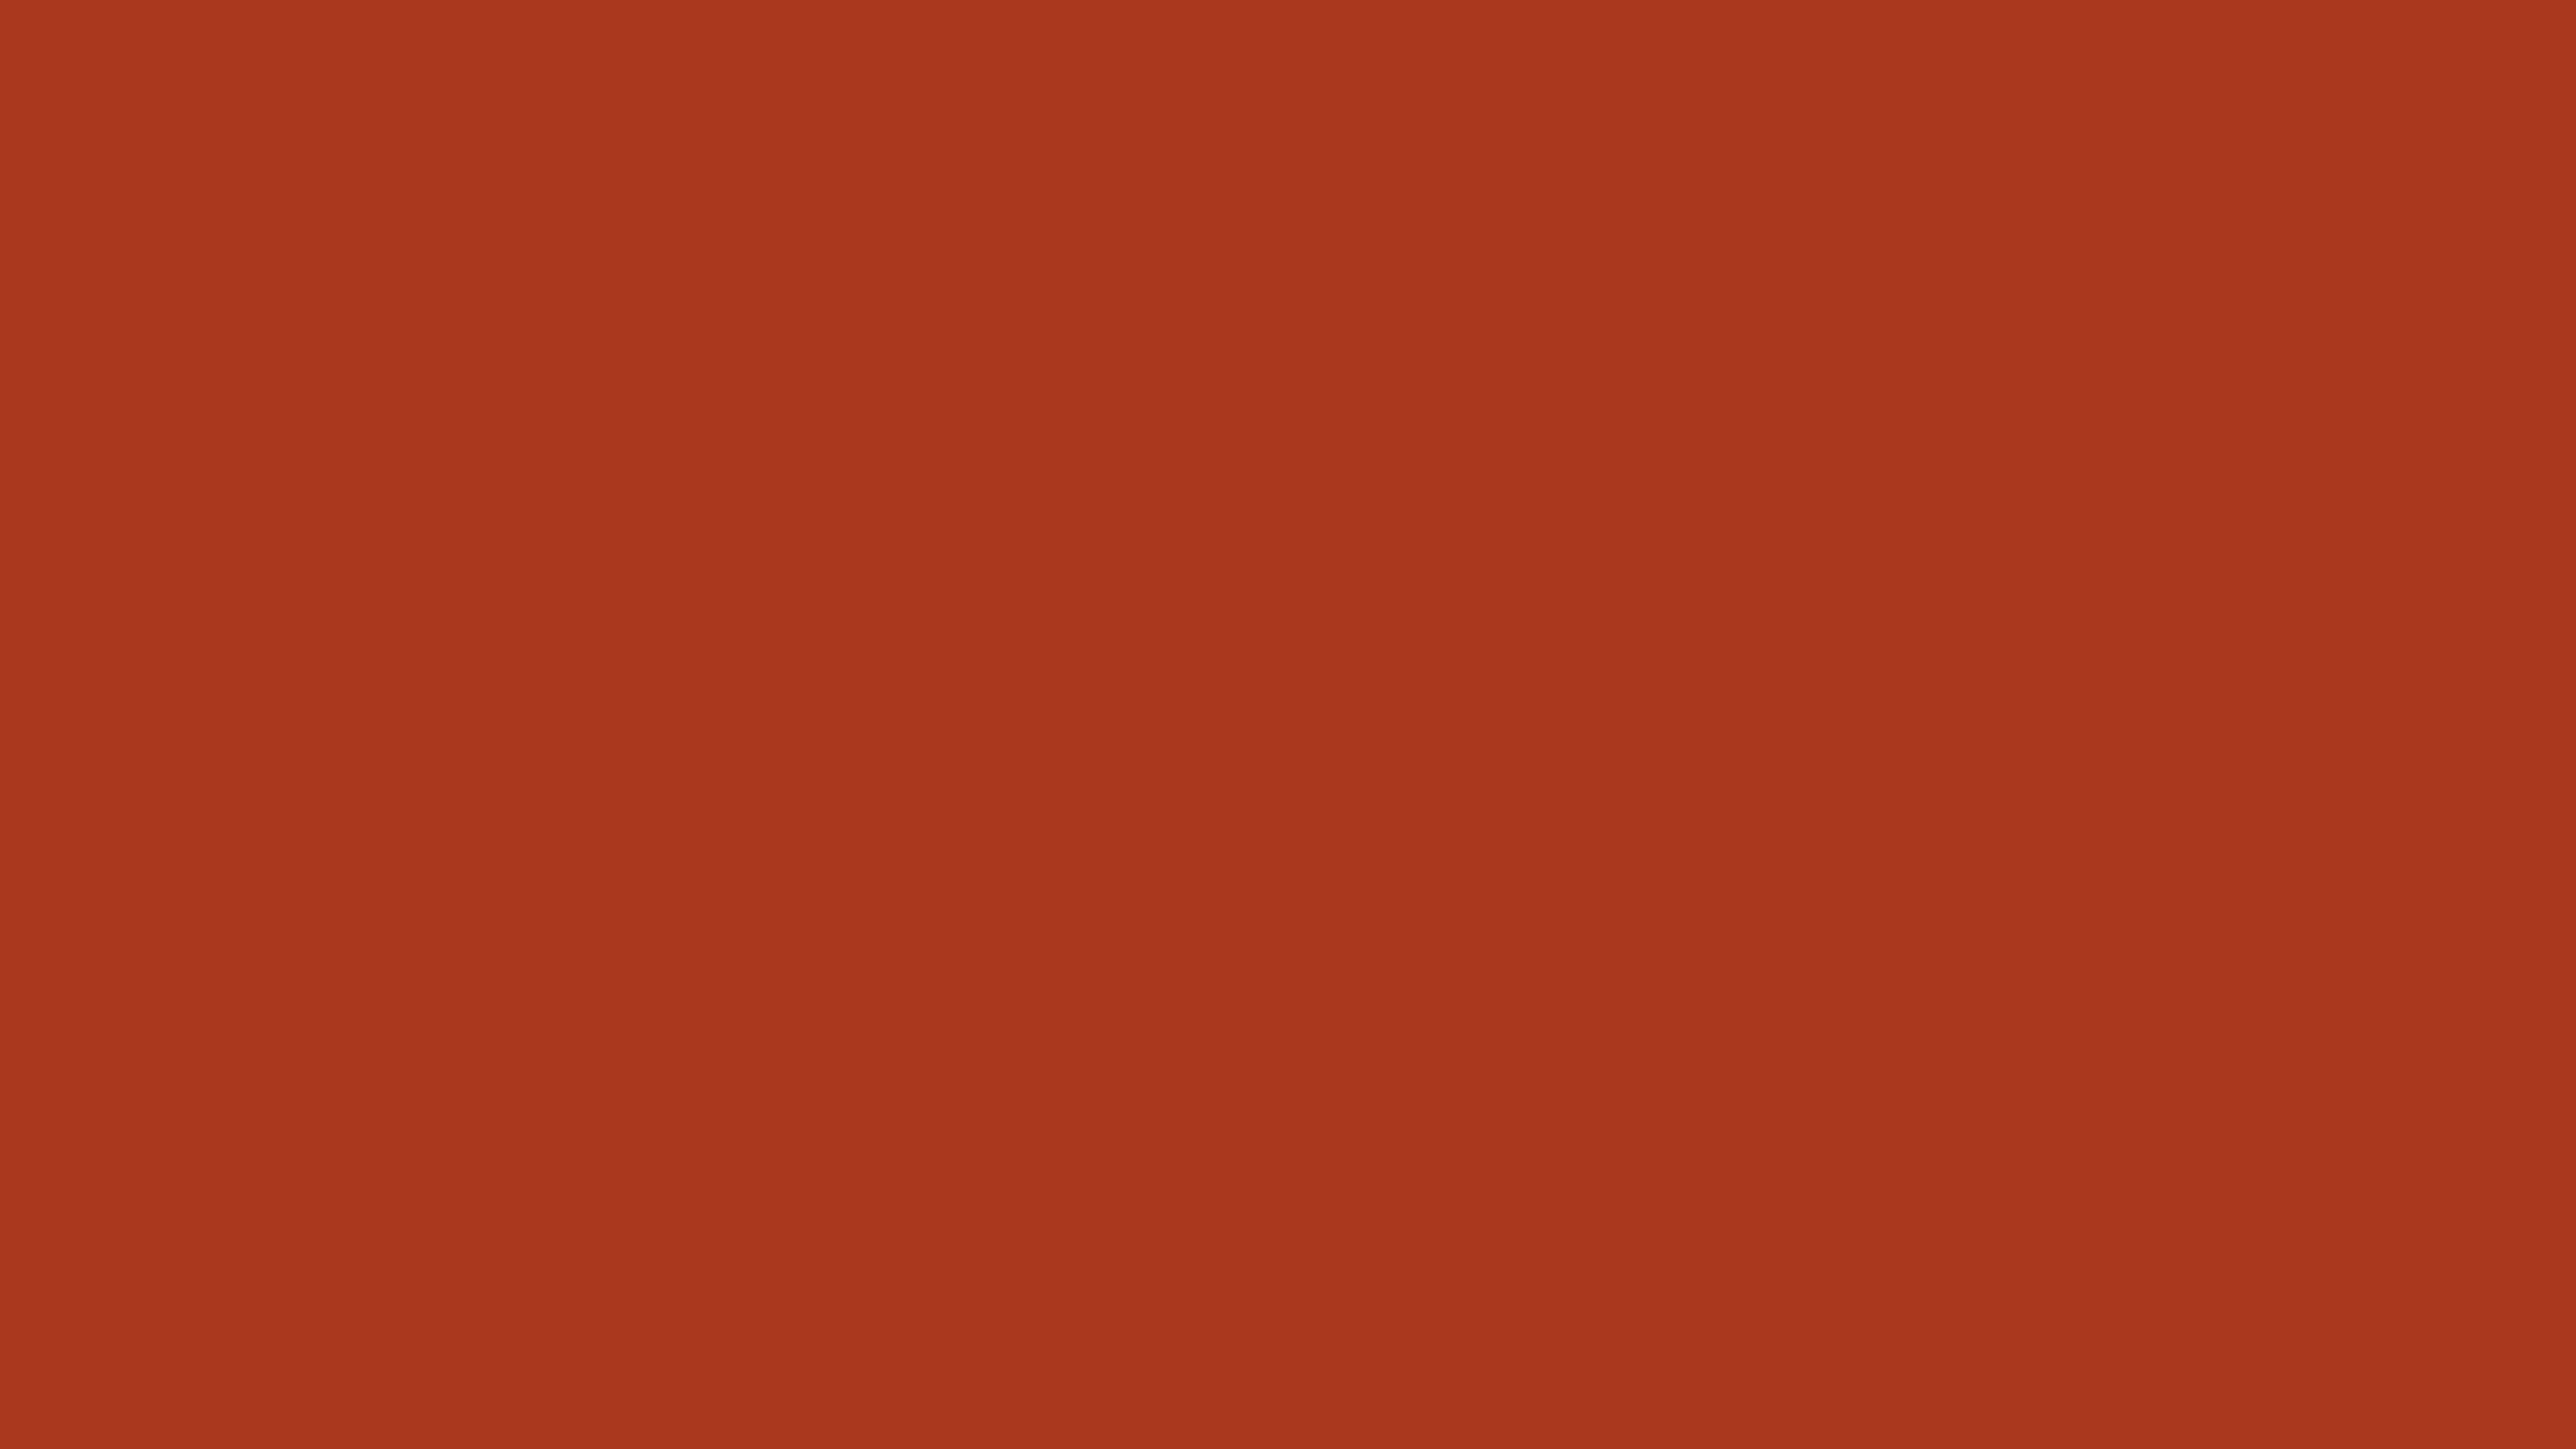 4096x2304 Chinese Red Solid Color Background